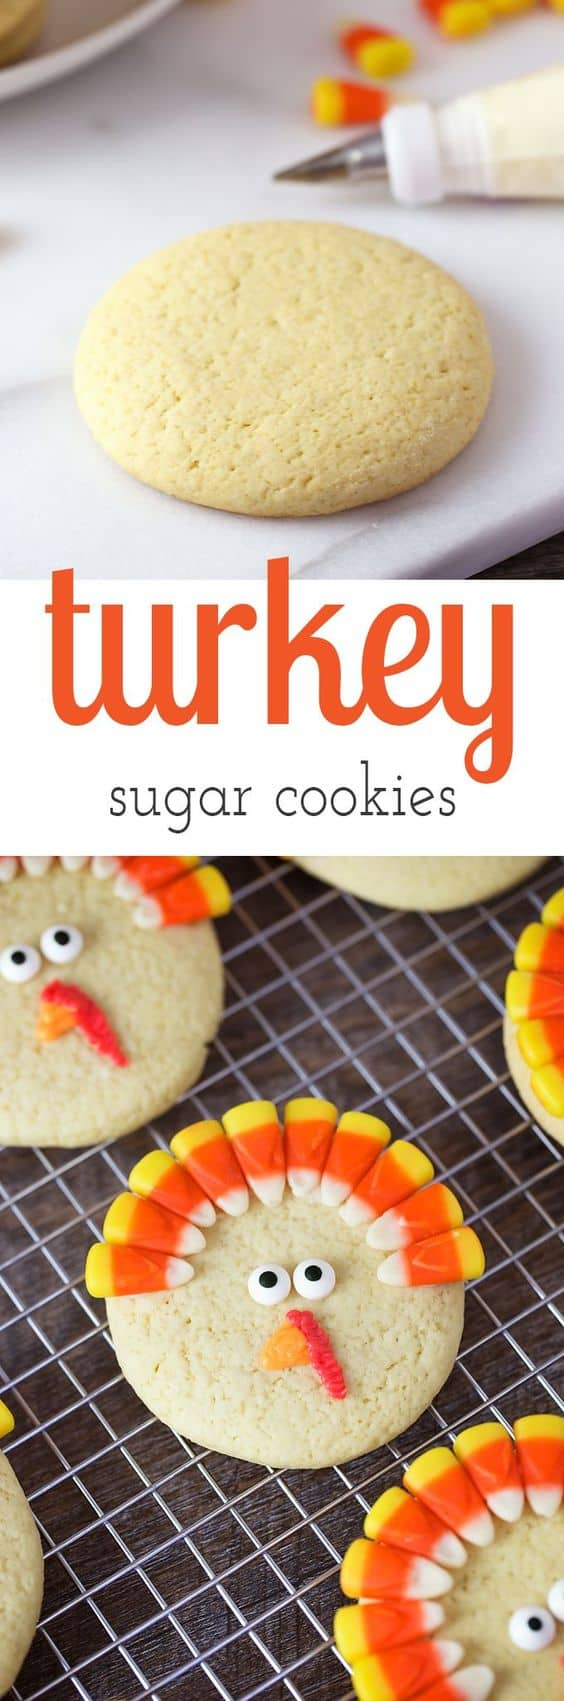 Turkey Sugar Biscuits look so cute they are very simple but will WOW the kids